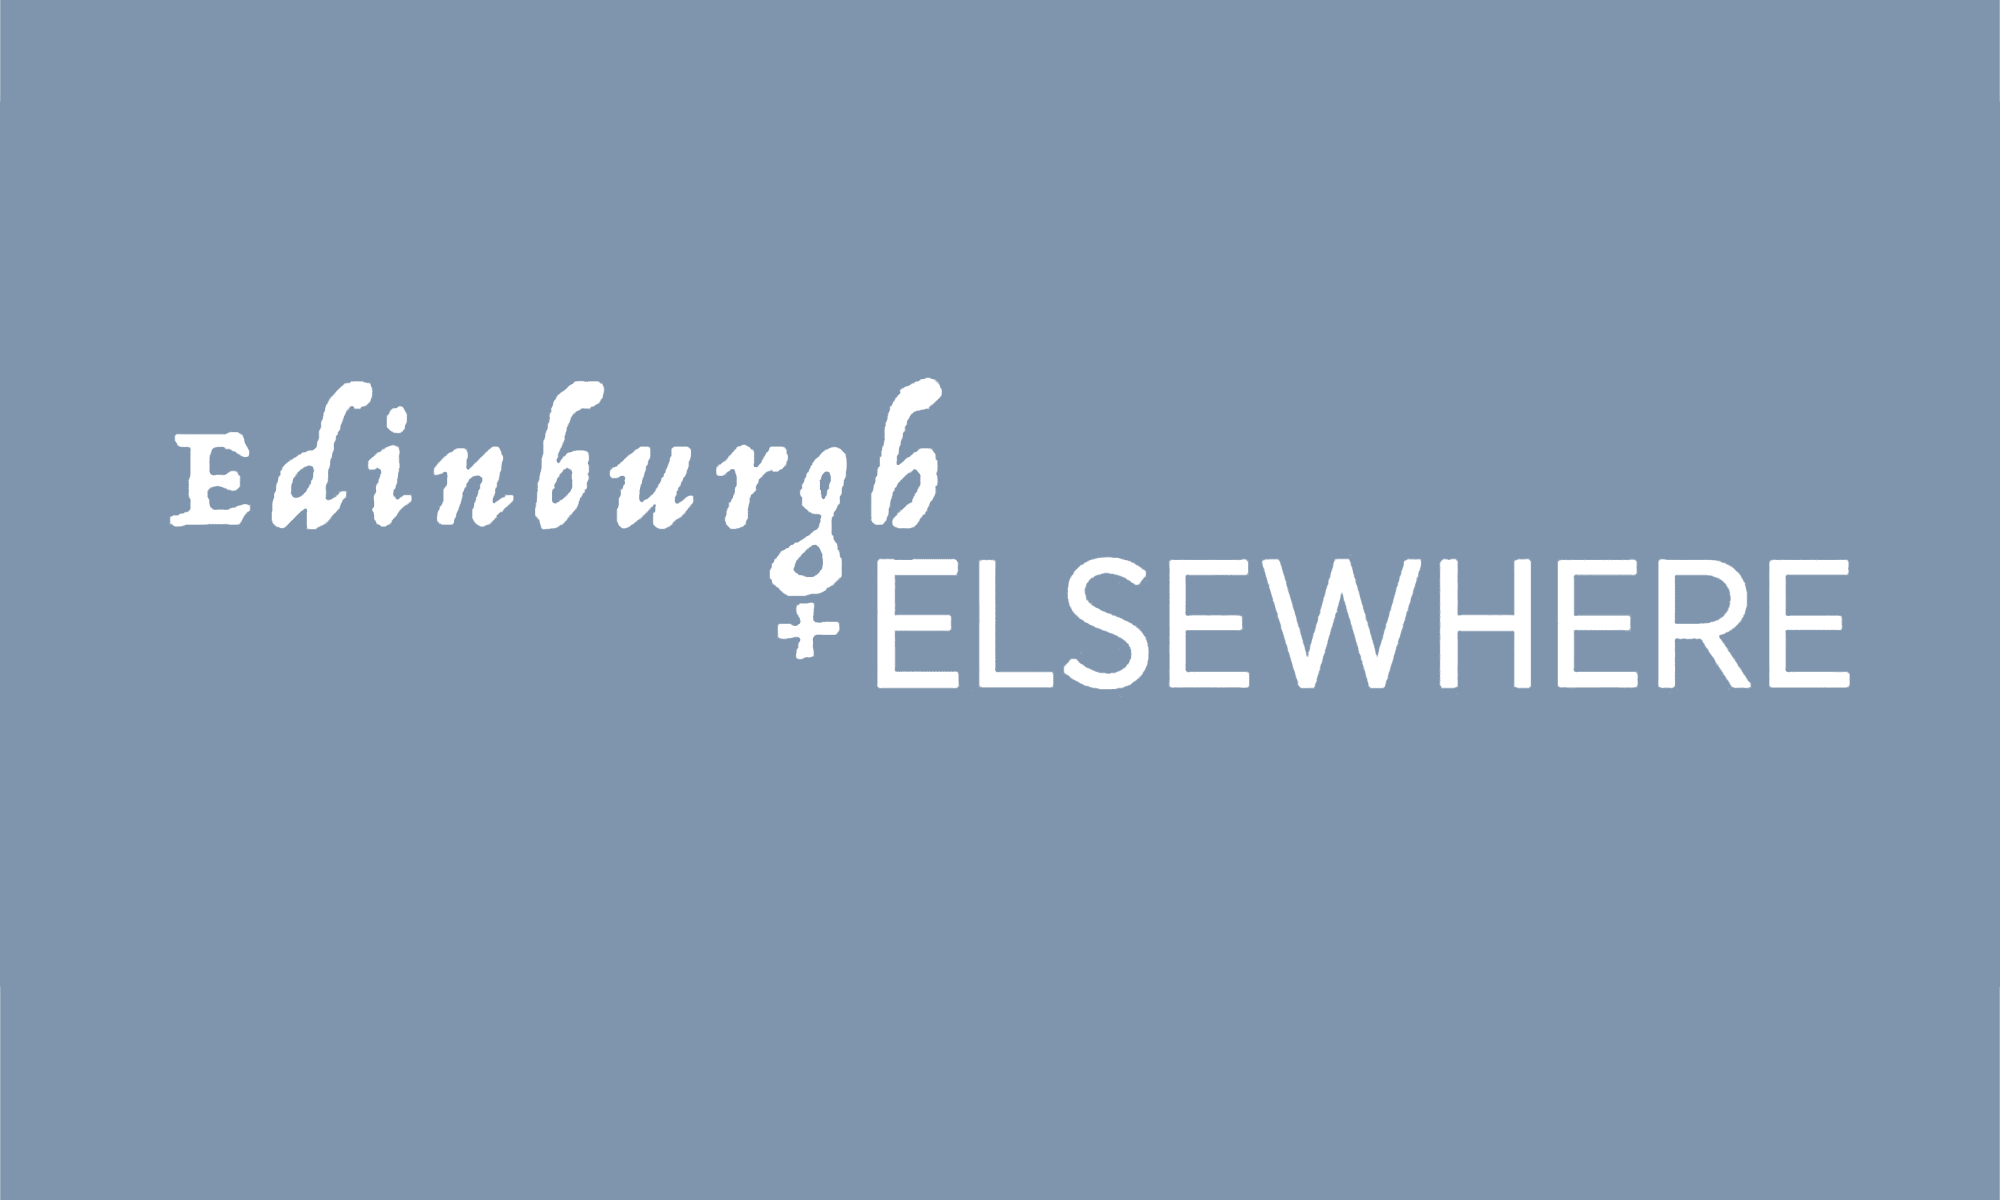 Edinburgh and Elsewhere